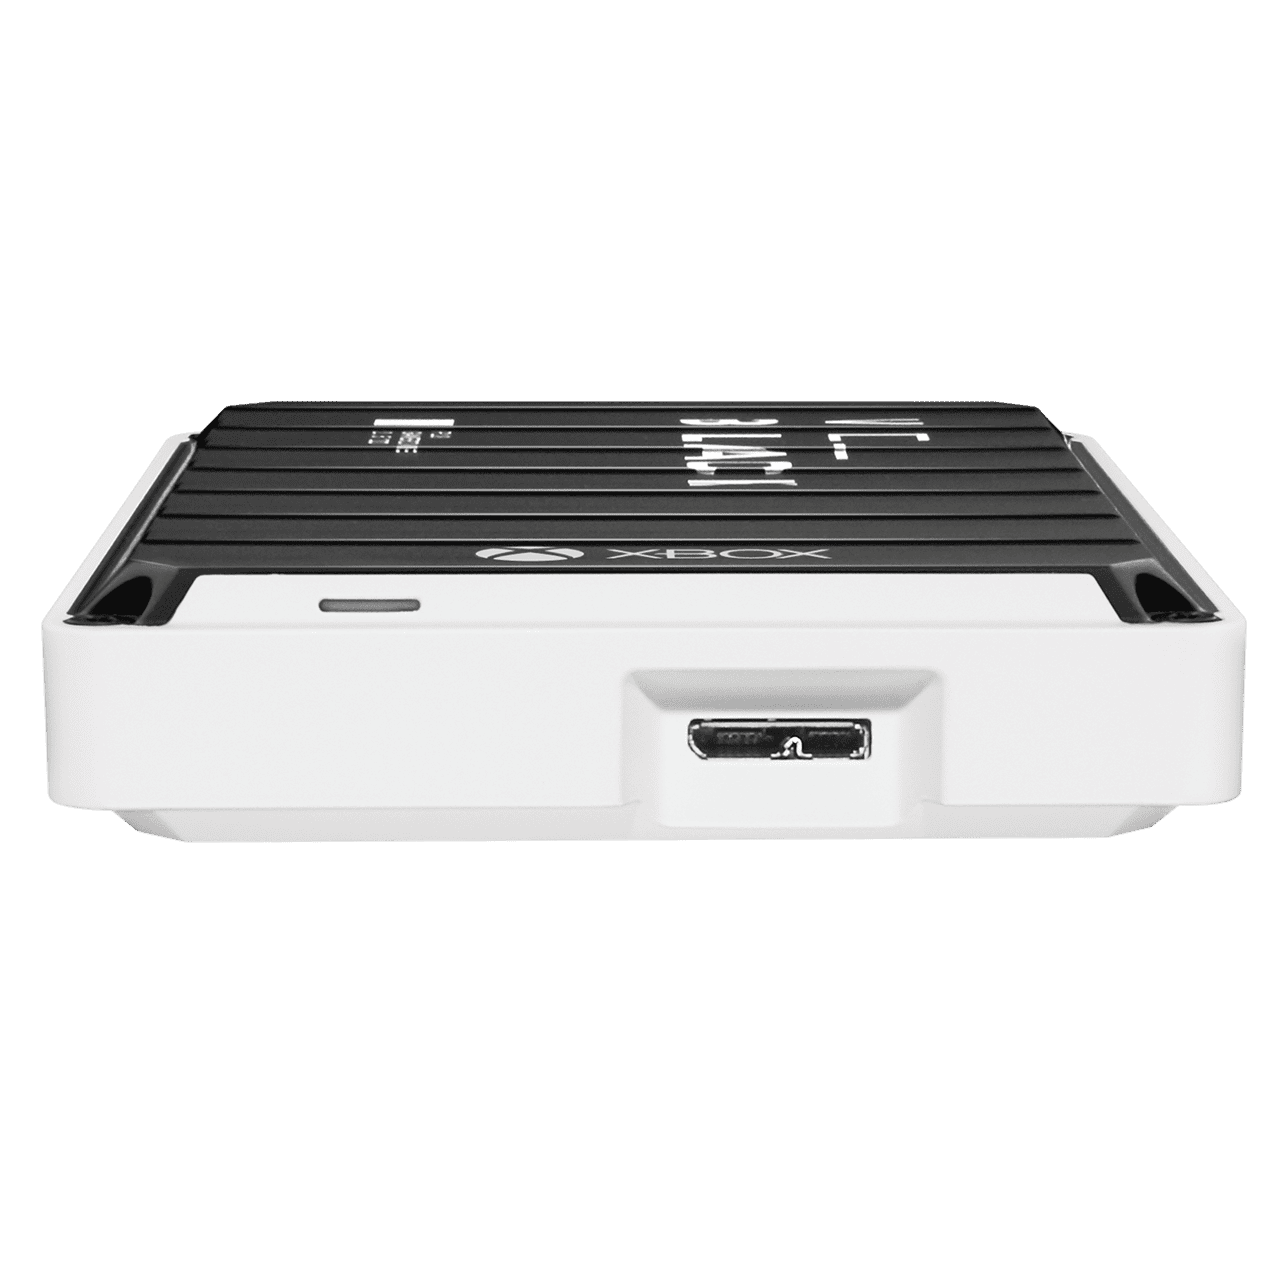 5TB WD_Black P10 Game Drive for Xbox One & PC for  image